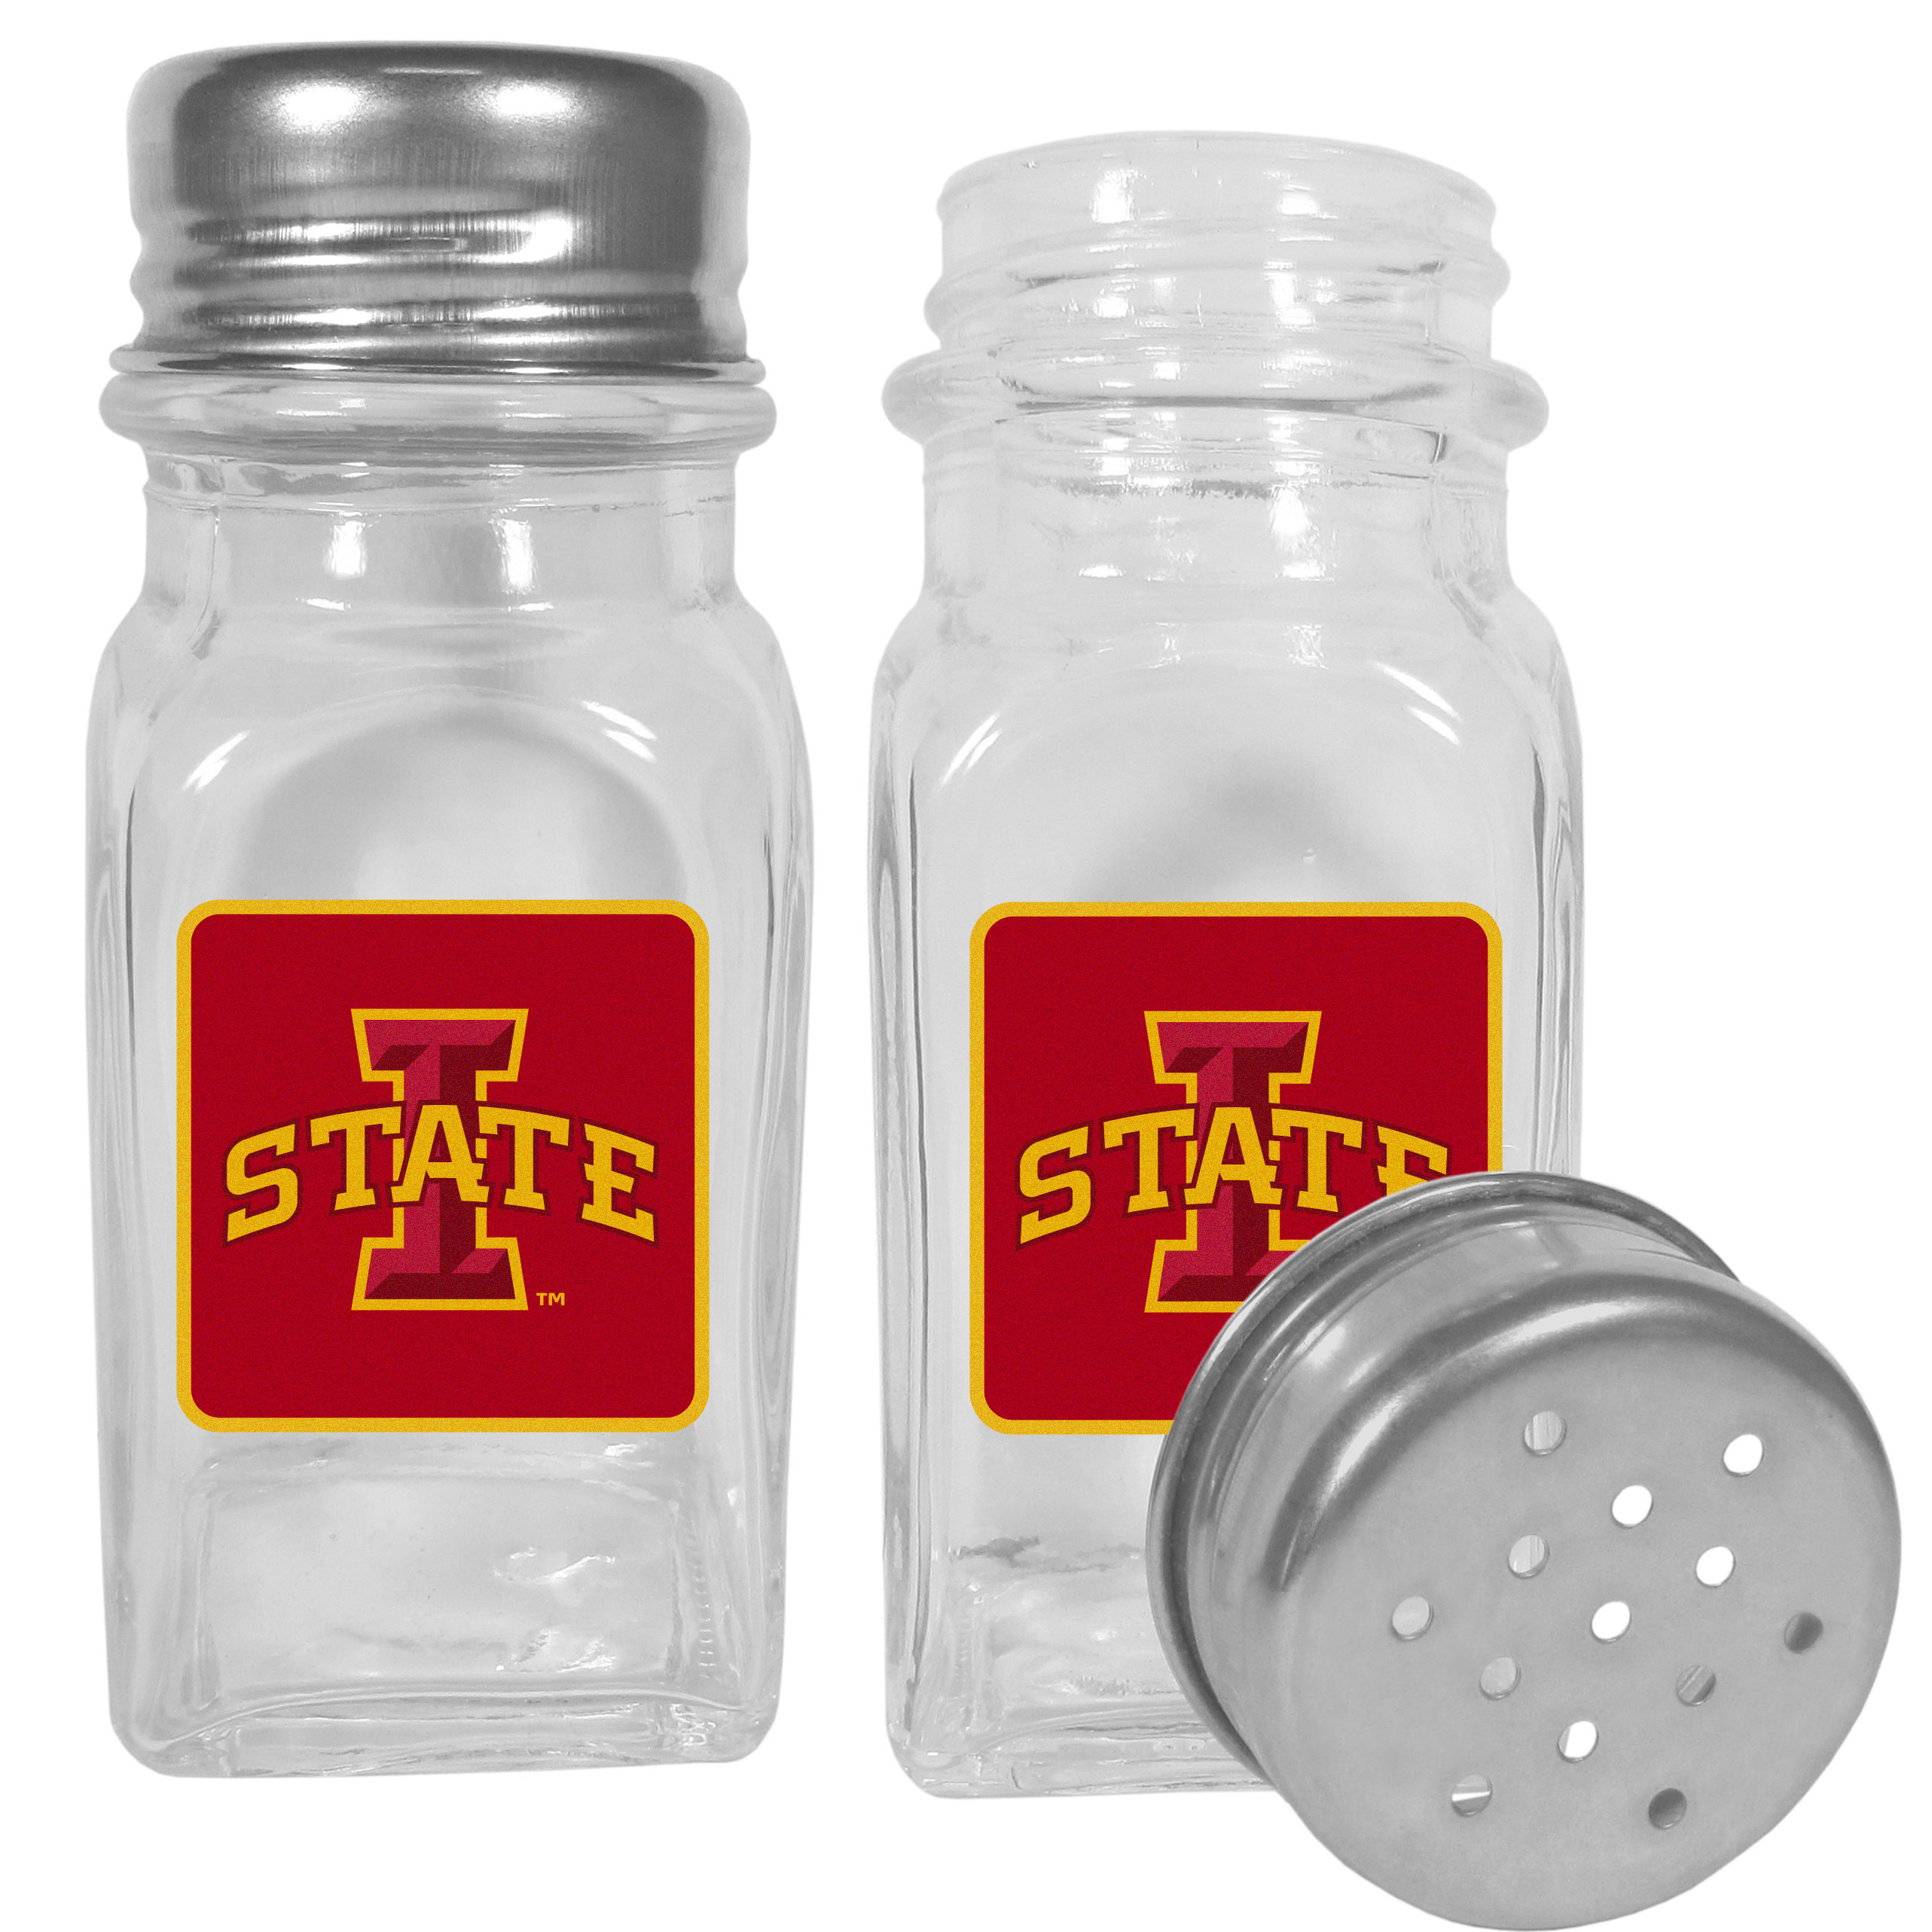 Iowa St. Cyclones Graphics Salt and Pepper Shaker - No tailgate party is complete without your Iowa St. Cyclones salt & pepper shakers featuring bright team logos. The diner replica salt and pepper shakers are glass with screw top lids. These team shakers are a great grill accessory whether you are barbecuing on the patio, picnicing or having a game day party.